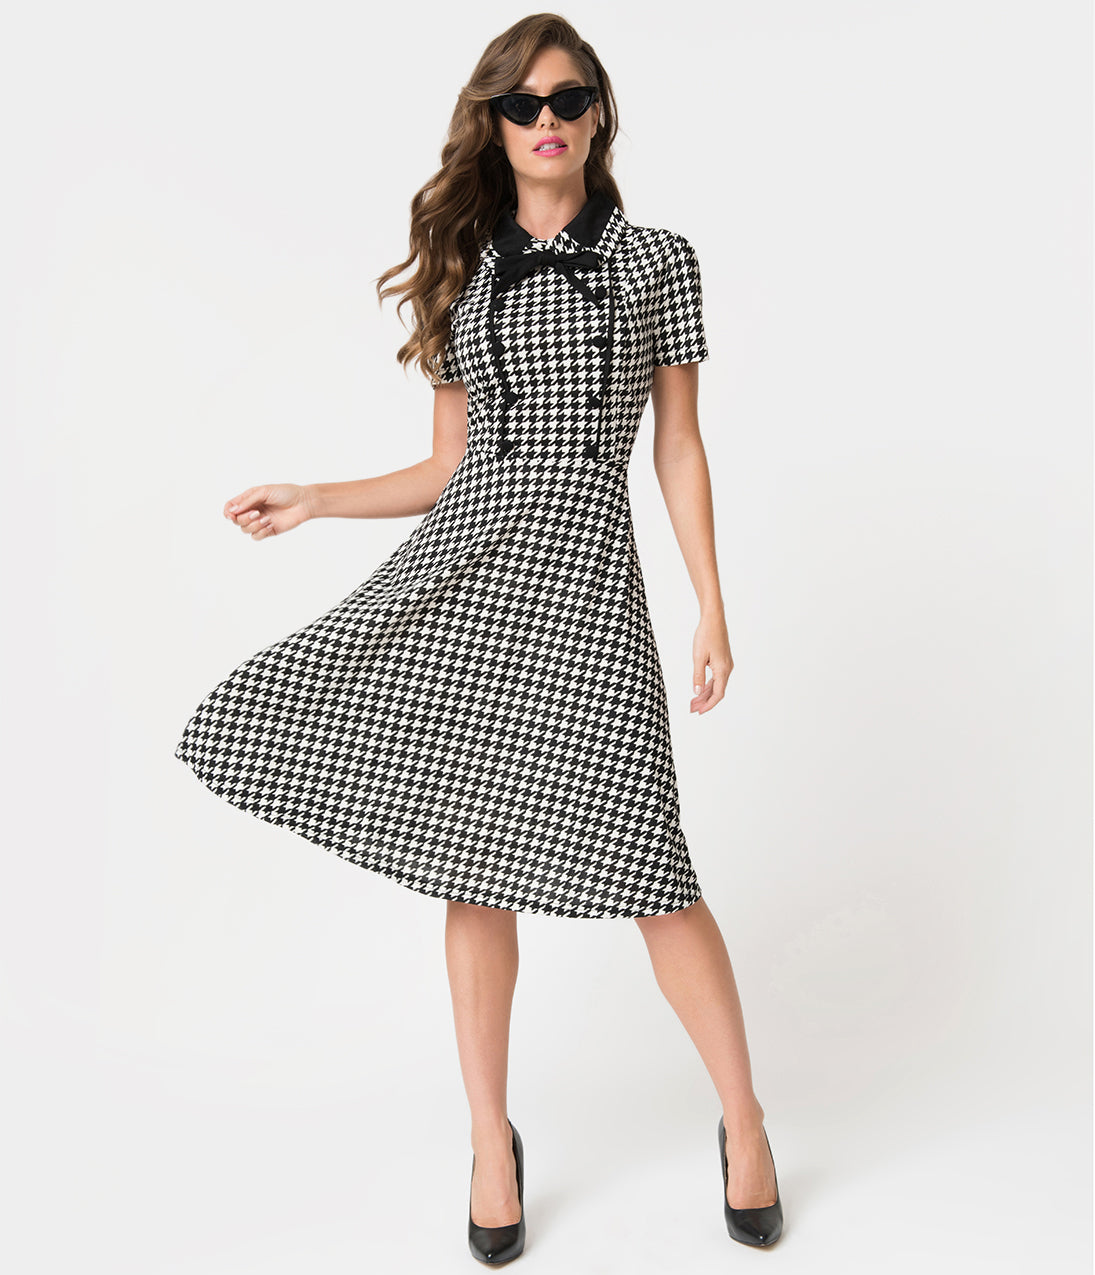 Vintage Tea Dresses, Floral Tea Dresses, Tea Length Dresses 1940S Style Black  White Houndstooth Button Swing Dress $68.00 AT vintagedancer.com